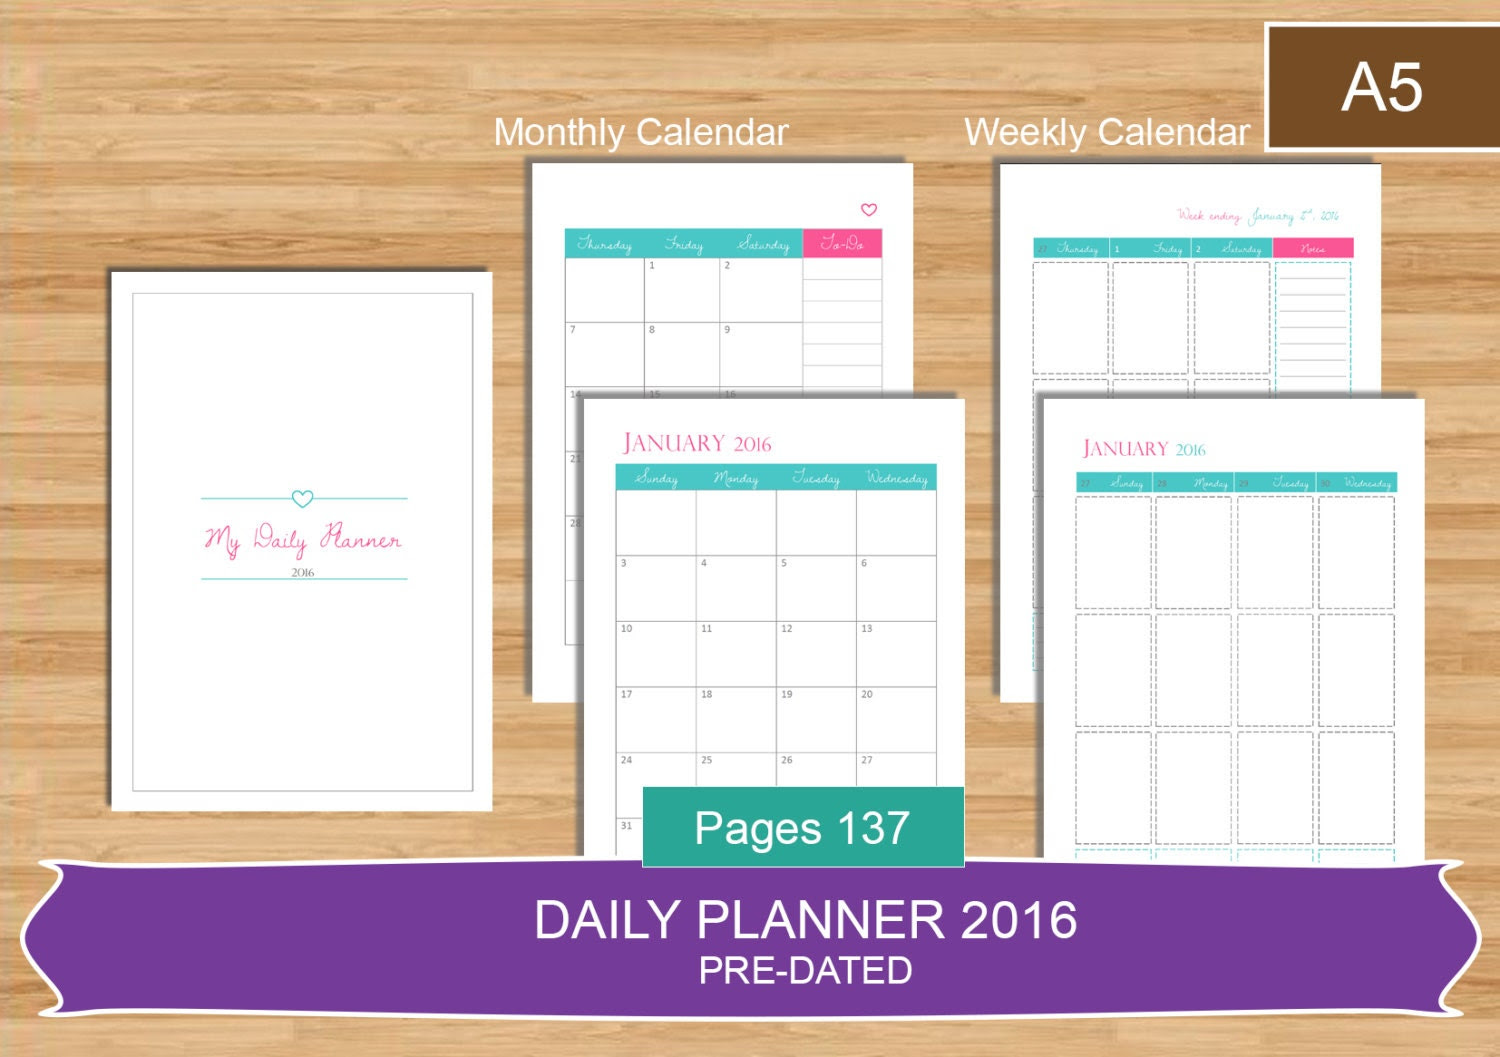 A5 Daily Planner 2016 PDF Everyday Planner by MadeInCraftadise